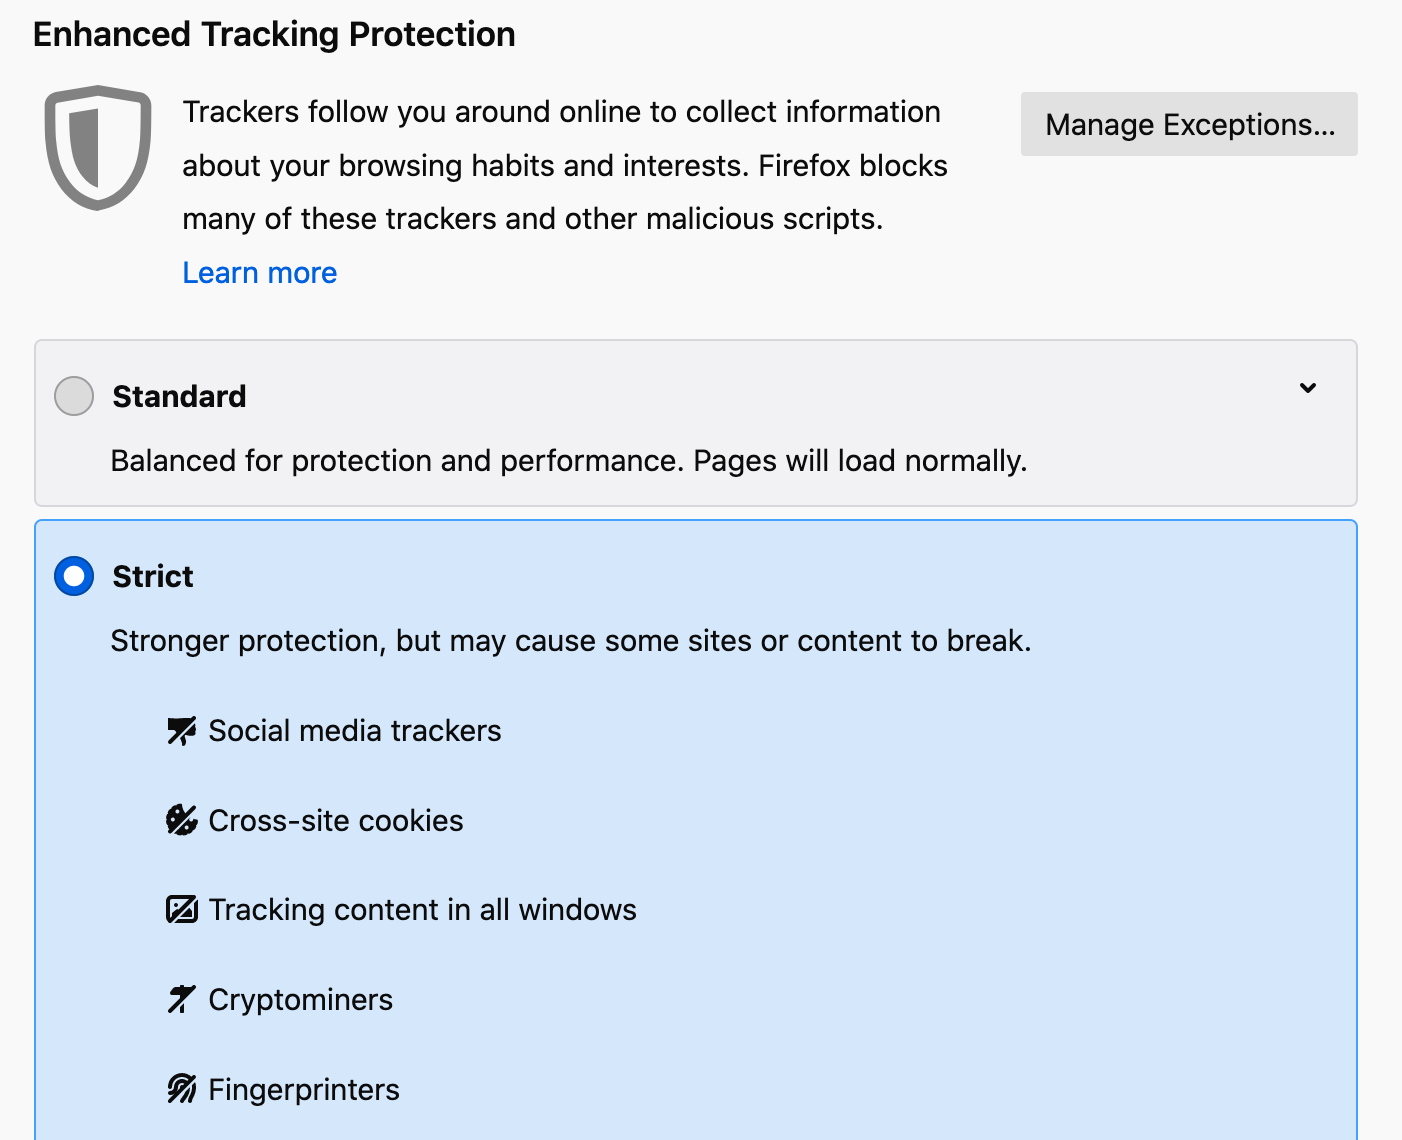 Enhanced Tracking Protection